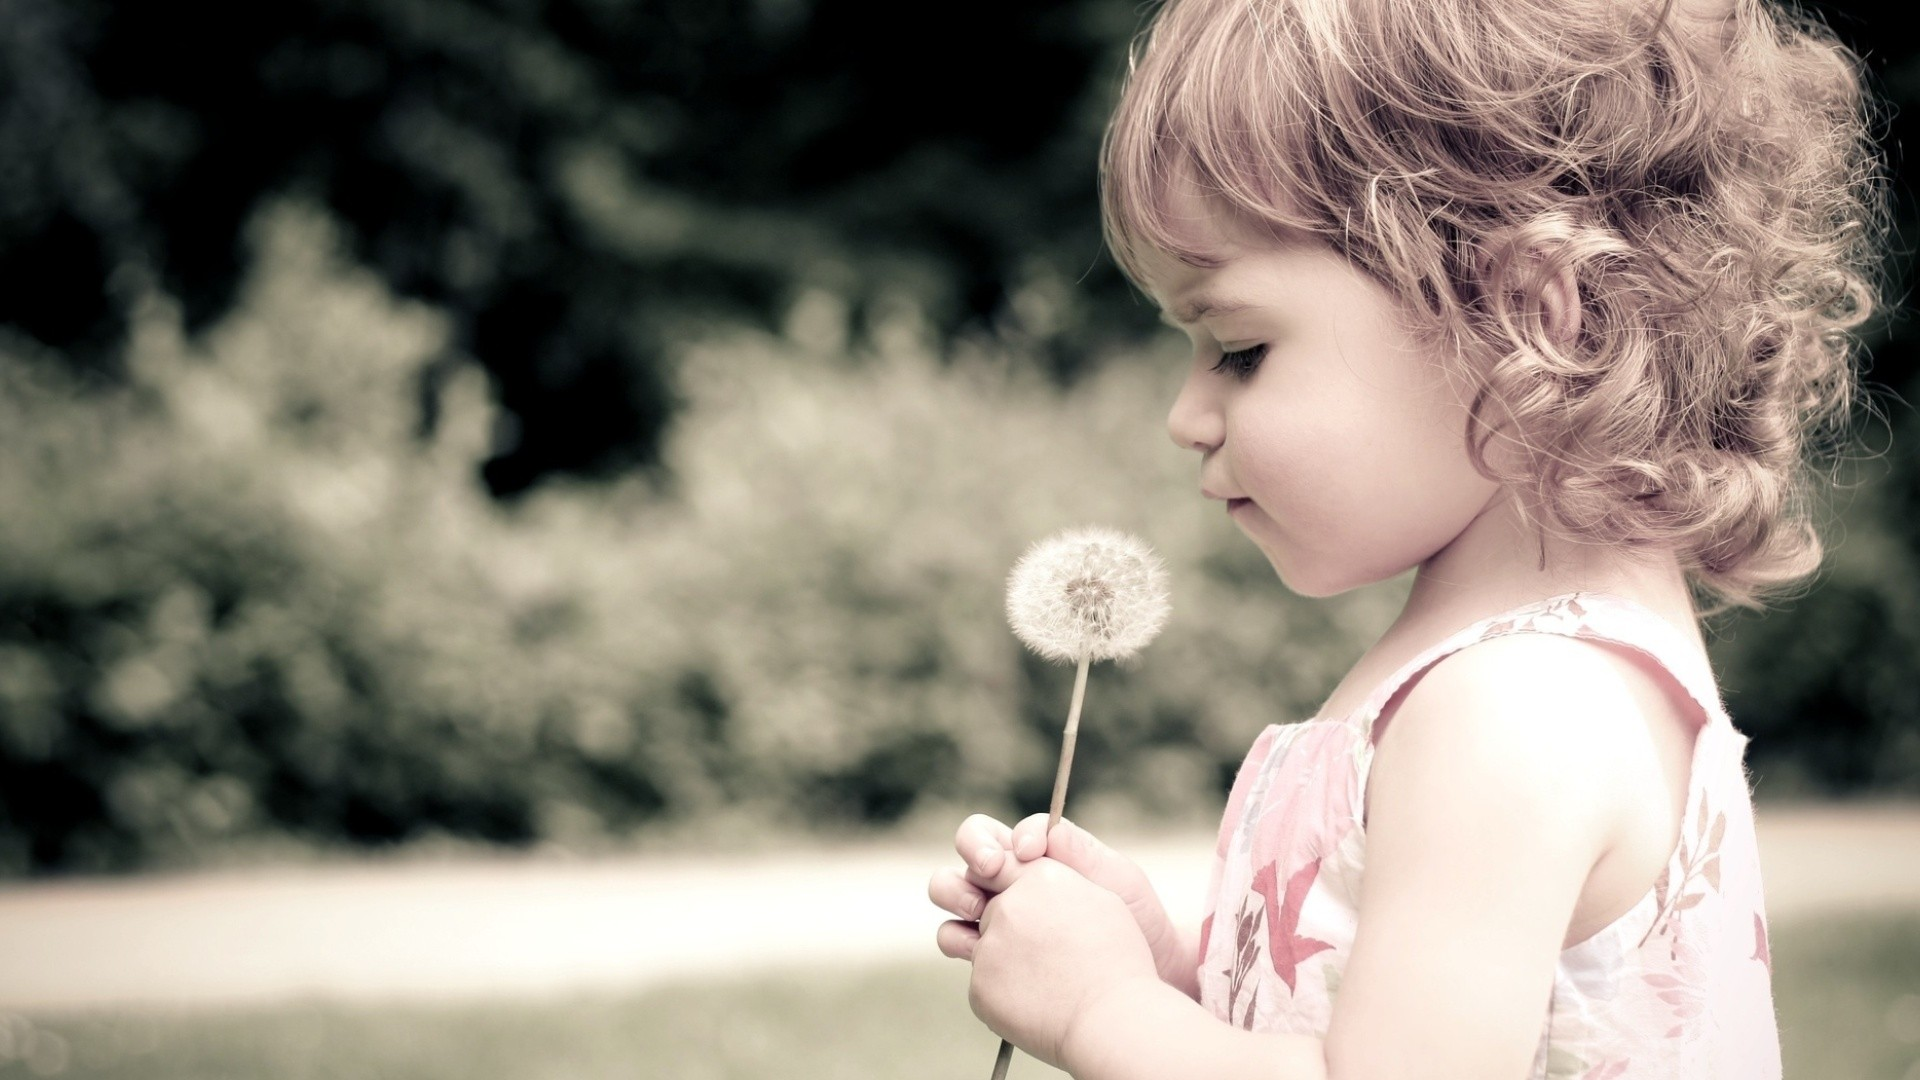 cute-baby-with-dandelion-1920×1080-wallpaper-wp3804276